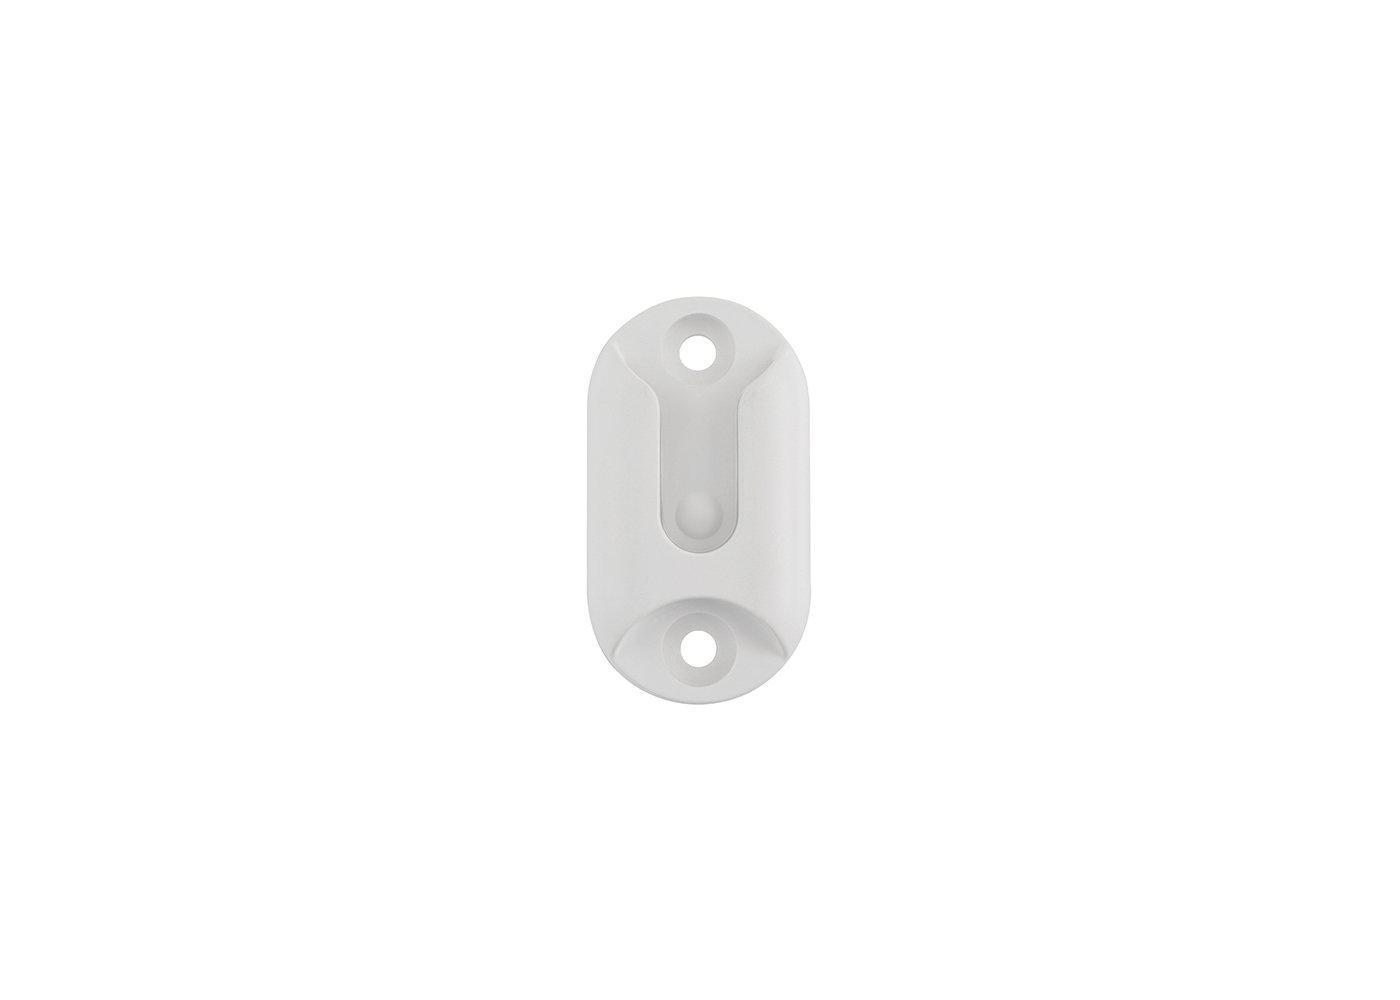 Microphone Bracket for the MR F45/F55/F75, White - cobra.com